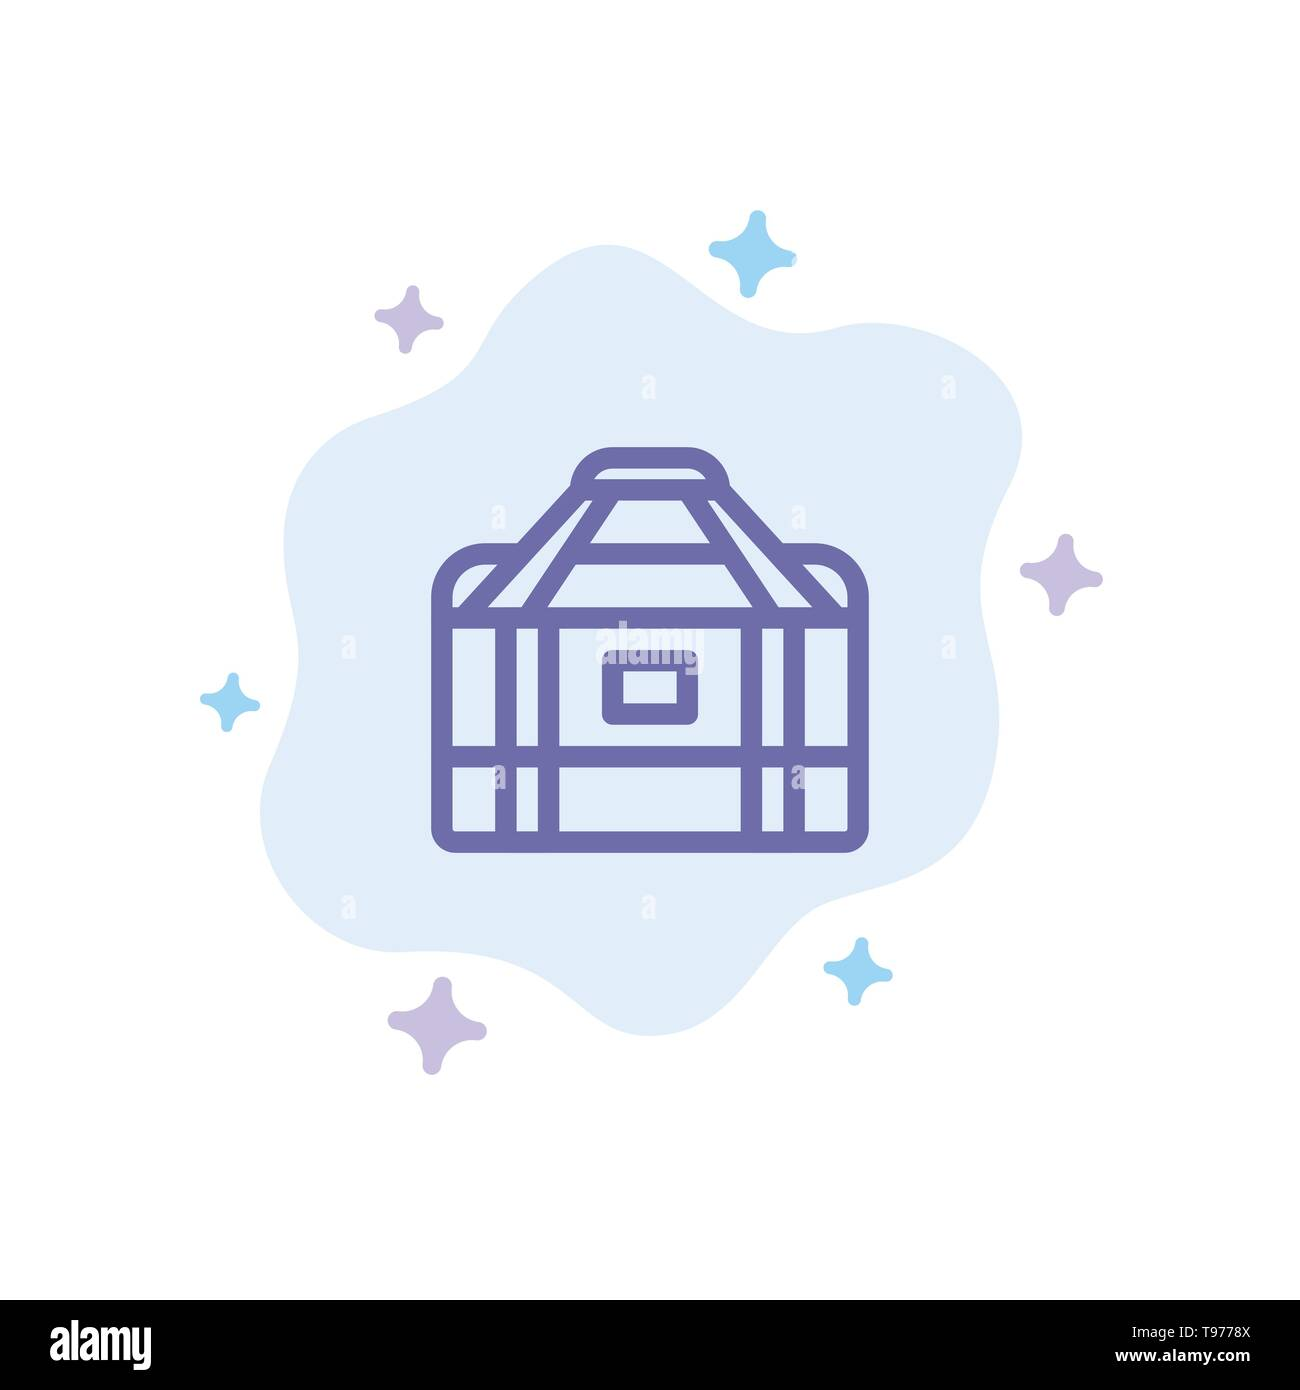 Bag, Equipment, Gym, Sports Blue Icon on Abstract Cloud Background - Stock Image